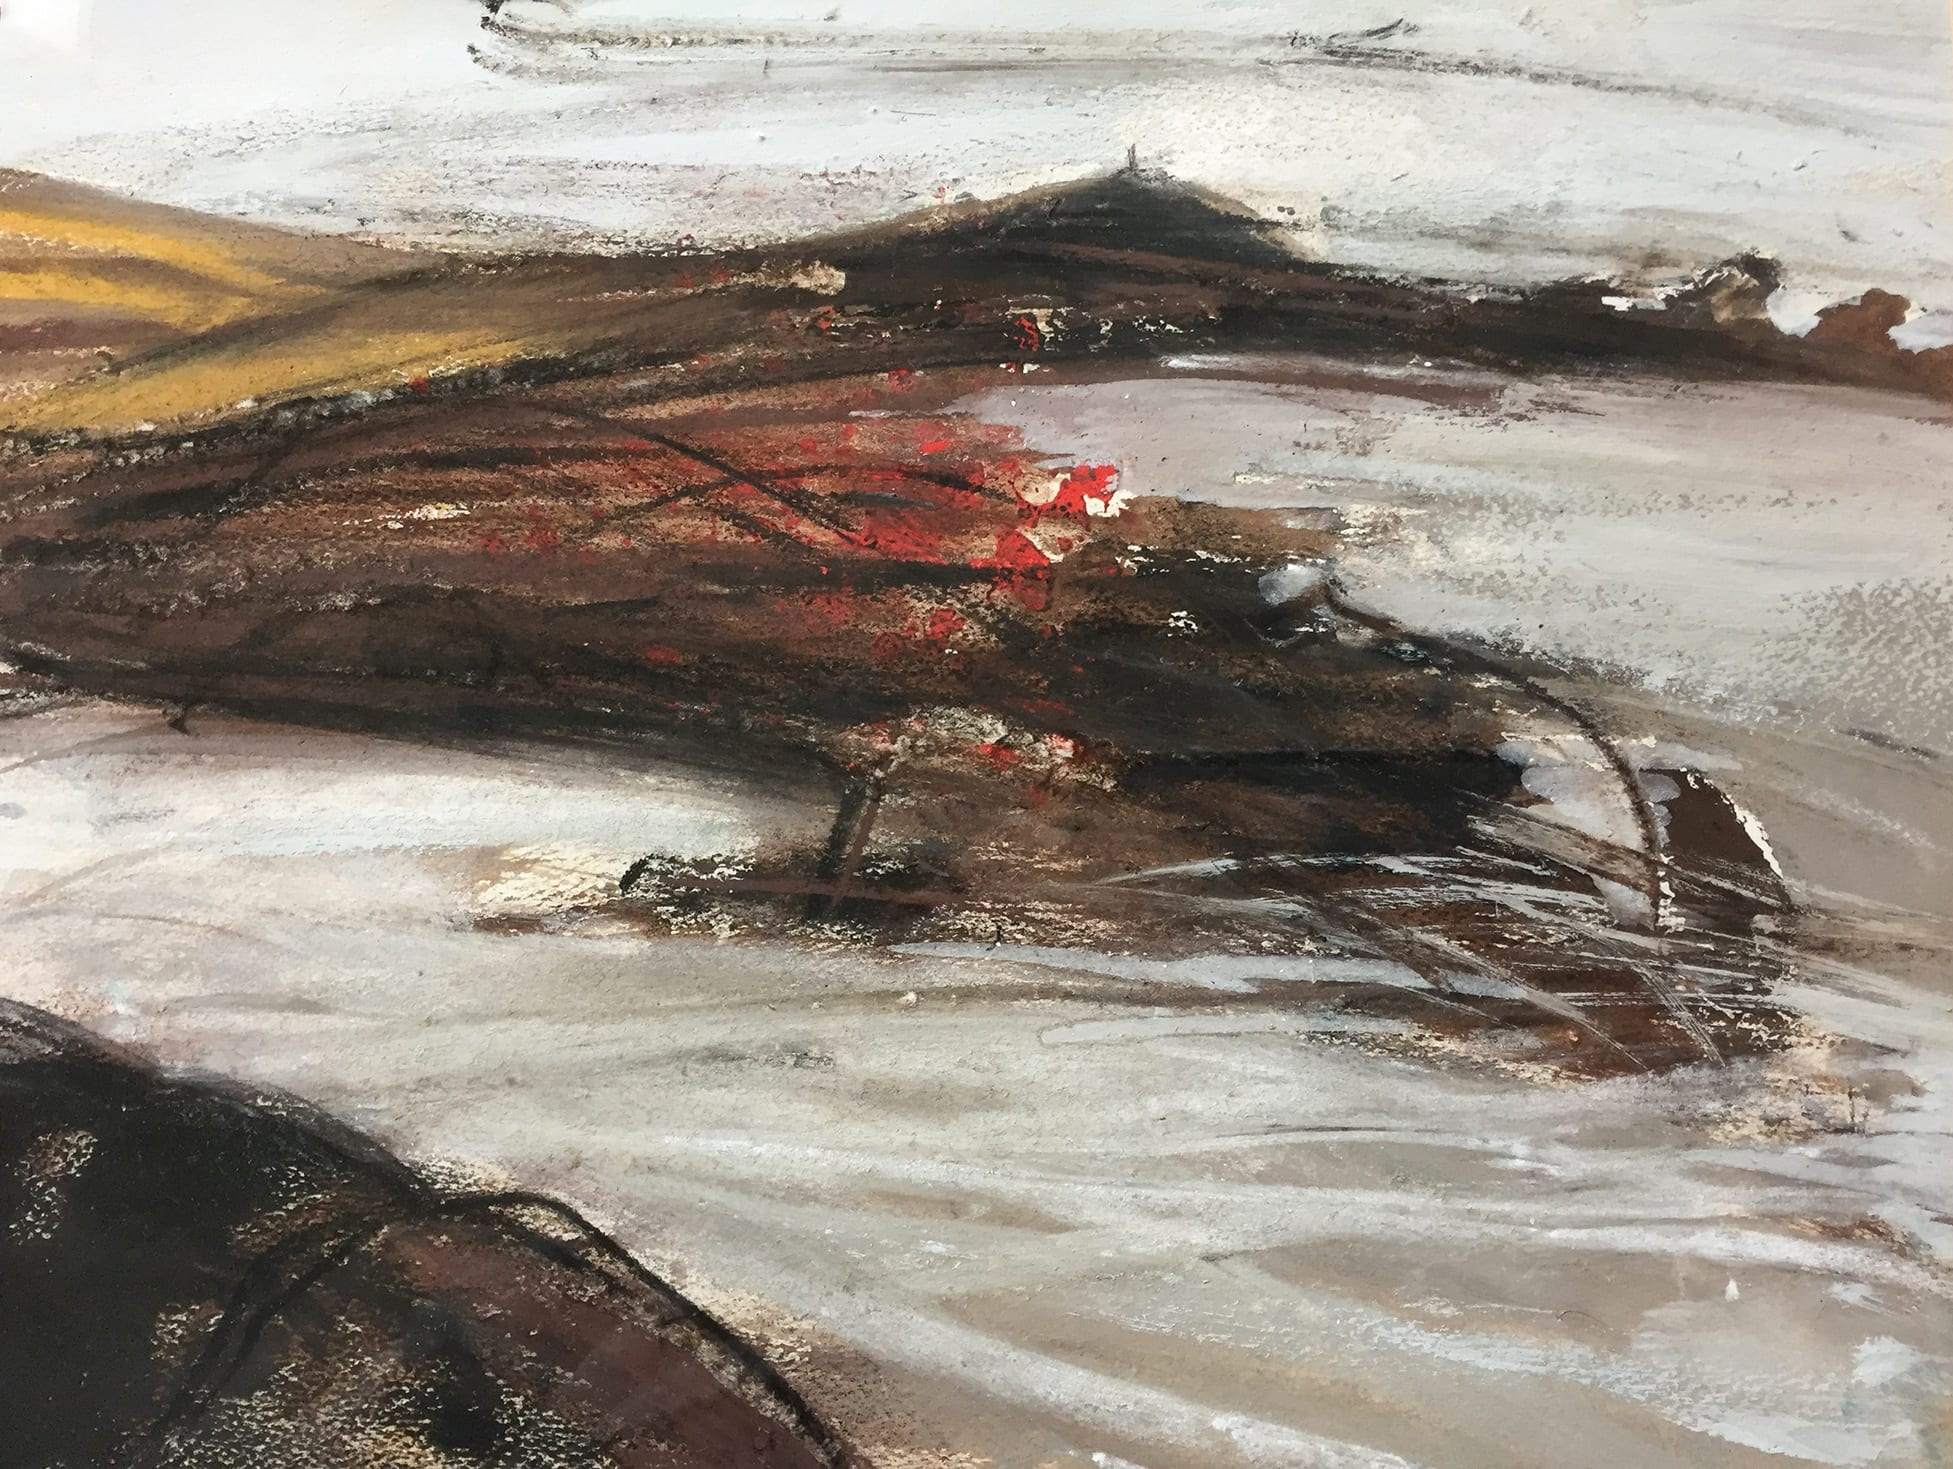 """<span class=""""link fancybox-details-link""""><a href=""""/artists/134-margo-maeckelberghe/works/7544-margo-maeckelberghe-cape-in-white-penwith-2000/"""">View Detail Page</a></span><div class=""""artist""""><strong>Margo Maeckelberghe</strong></div> 1932–2014 <div class=""""title""""><em>Cape in White, Penwith</em>, 2000</div> <div class=""""signed_and_dated"""">signed, titled, and dated verso</div> <div class=""""medium"""">mixed media on handmade paper</div> <div class=""""dimensions"""">visible image size: 24.4 x 34.4 cm <br /> frame size: 44 x 54 cm</div><div class=""""copyright_line"""">© The Estate of Margo Maeckelberghe</div>"""